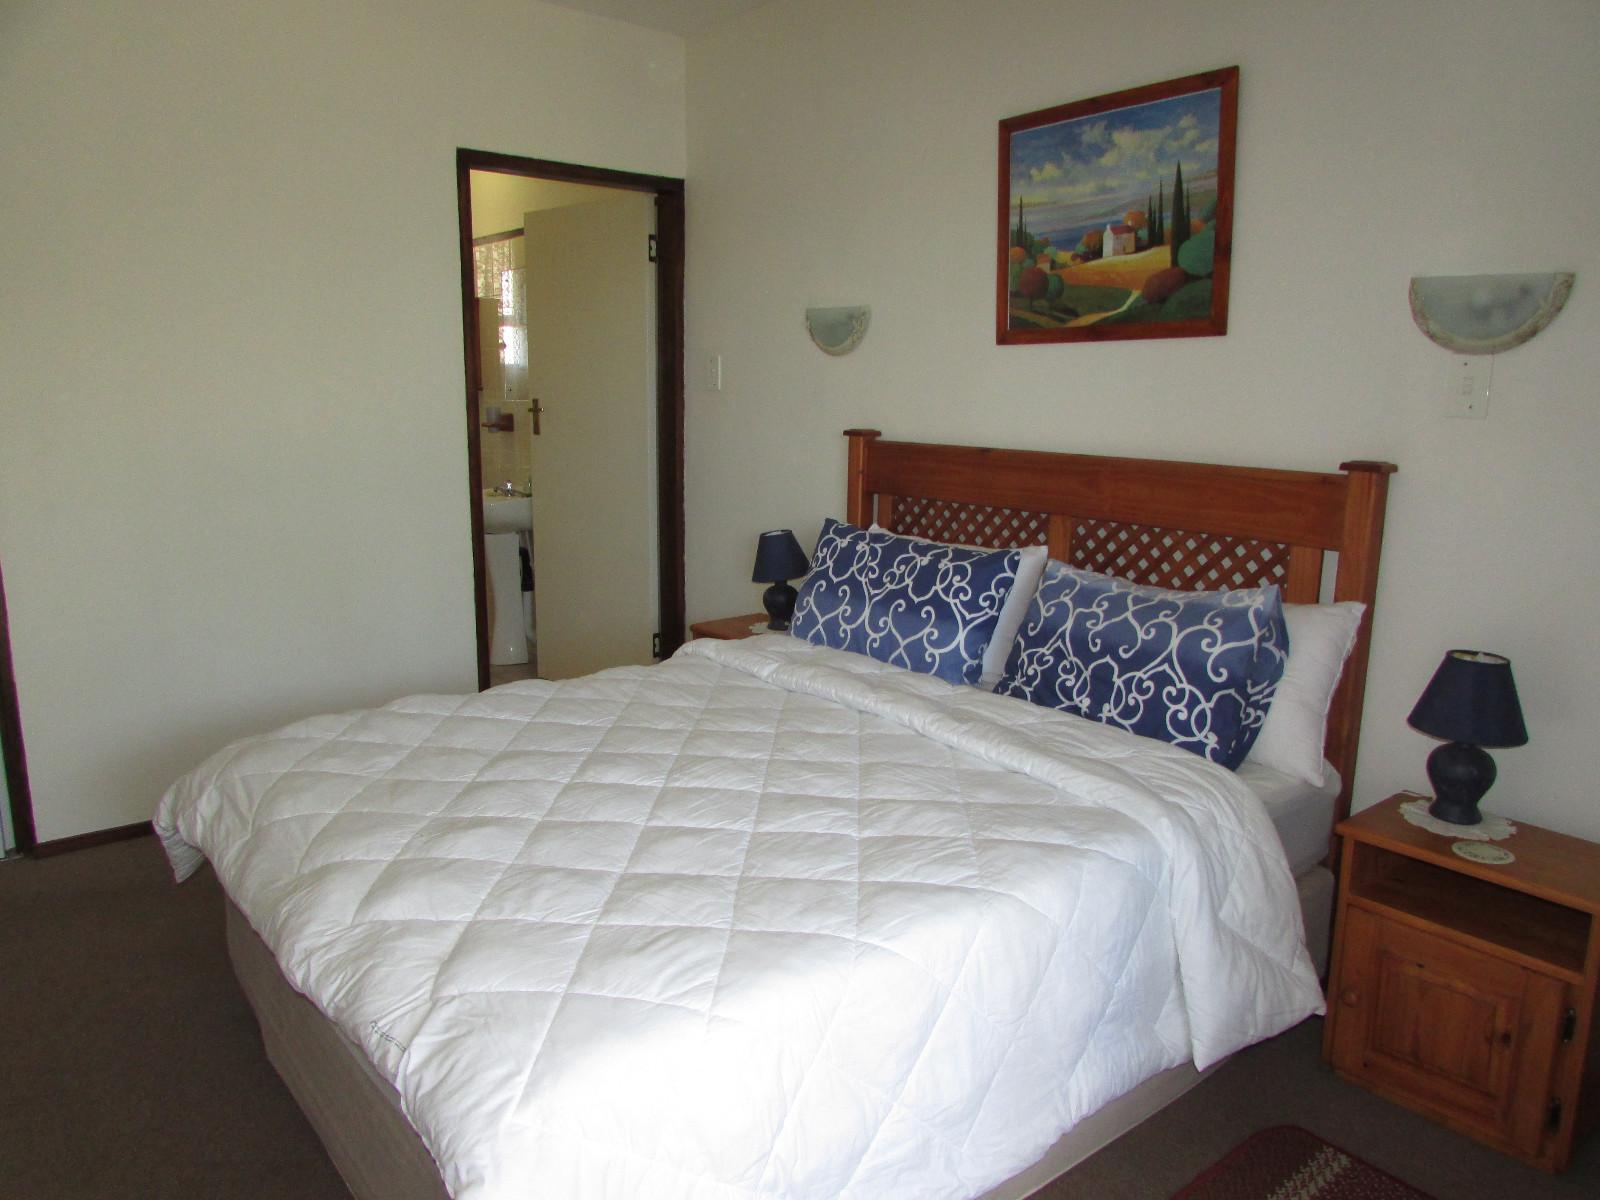 Shelly Beach property for sale. Ref No: 13243098. Picture no 5